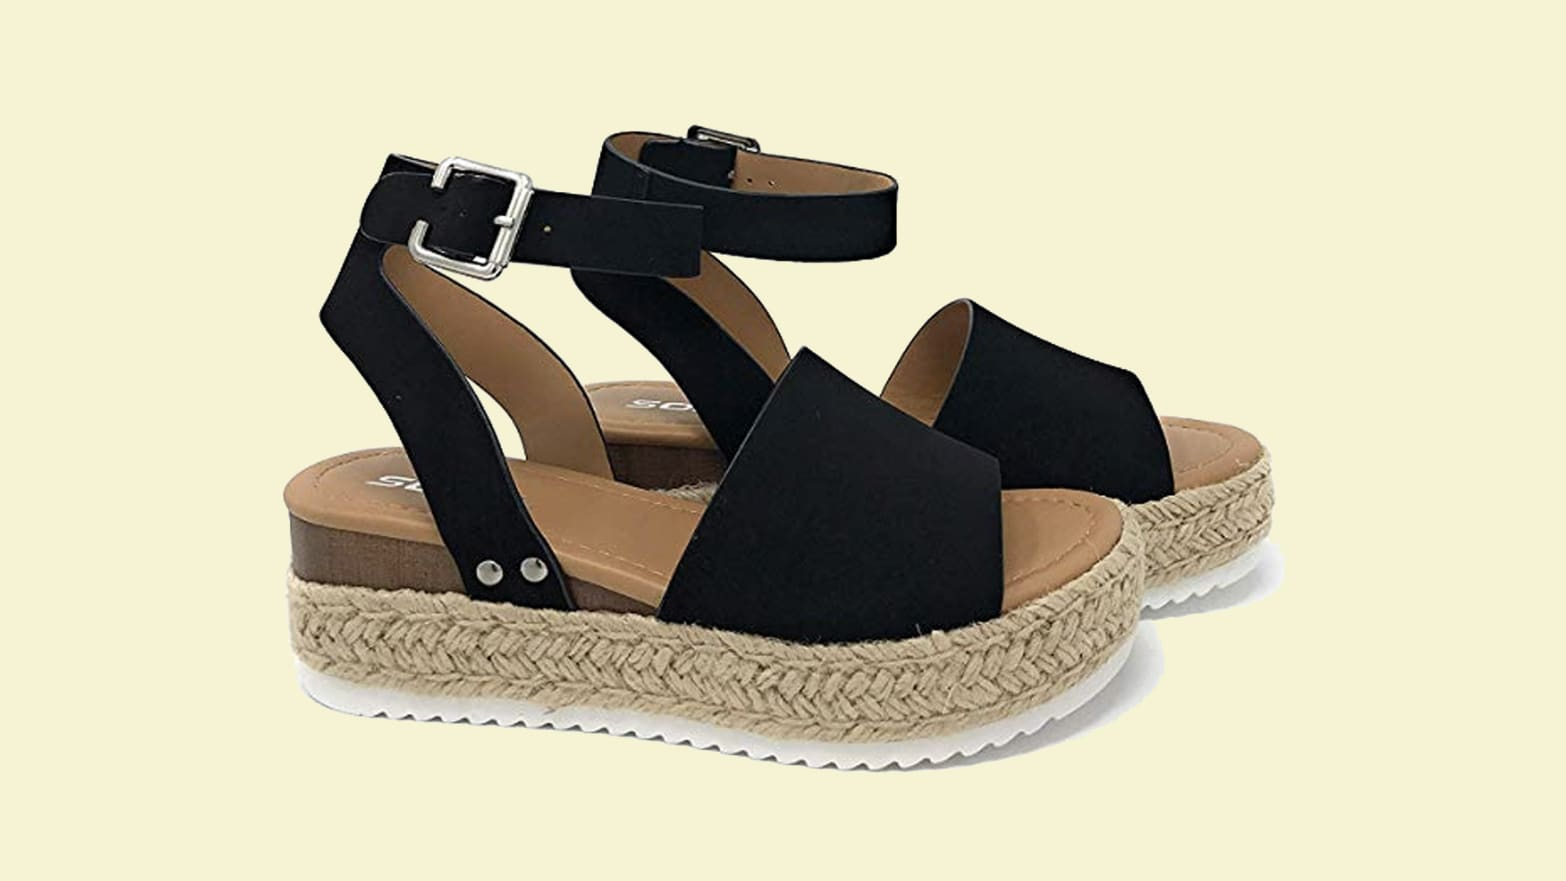 official supplier best place best website Shop These Platform Espadrilles From Amazon